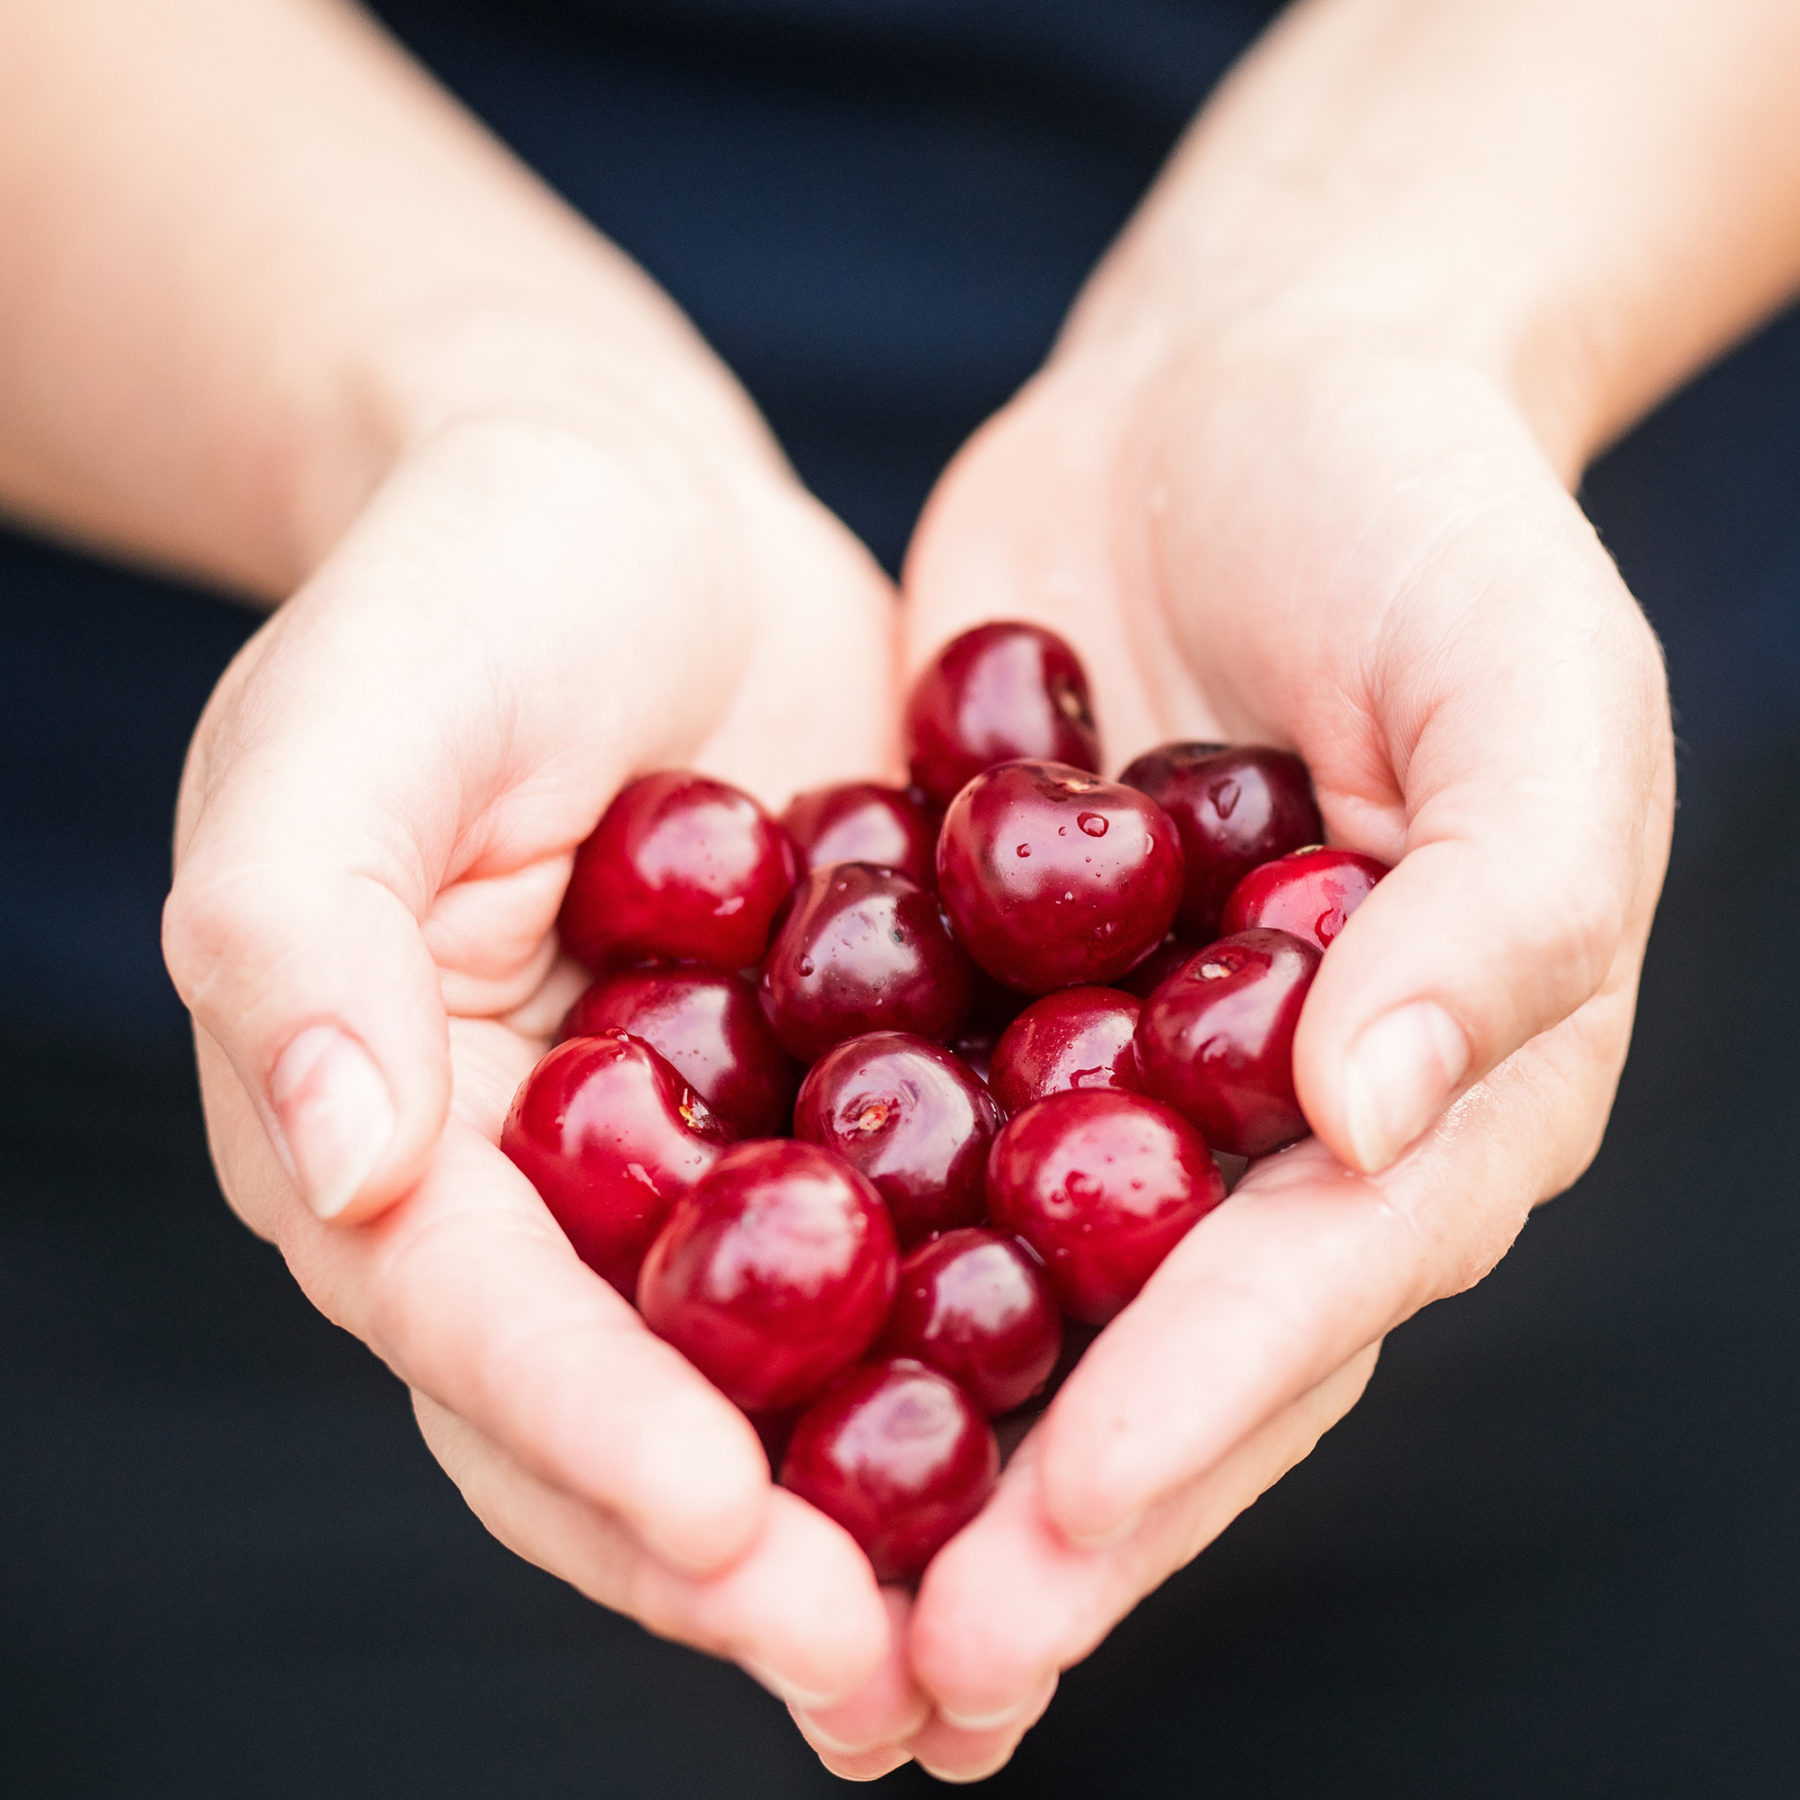 A pair of hands holding fresh cherries.